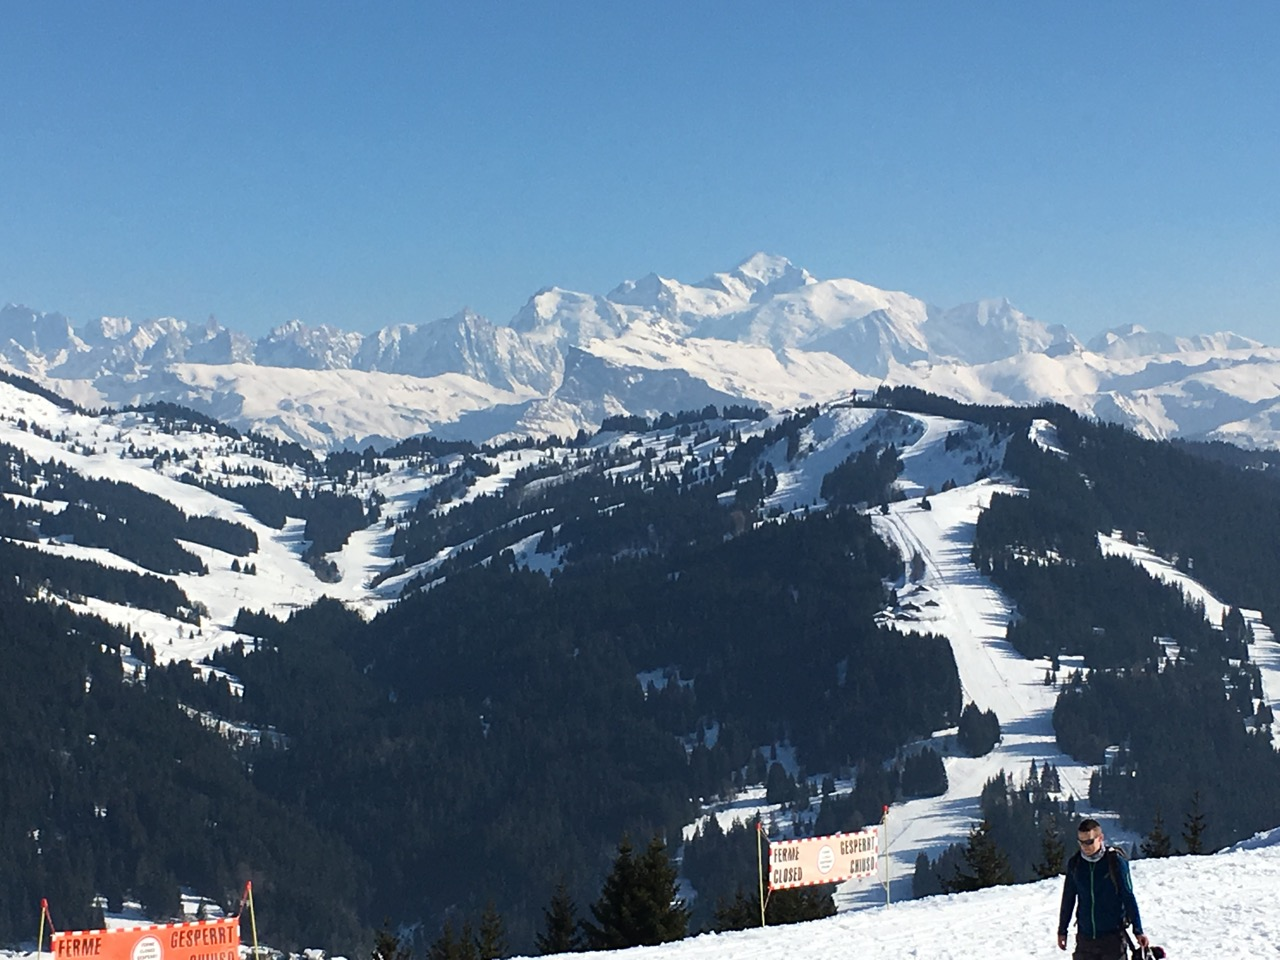 The breathtaking view of the Ranfolly bowl and the Mont Blanc Massif from Le Belvédère, Les Gets.